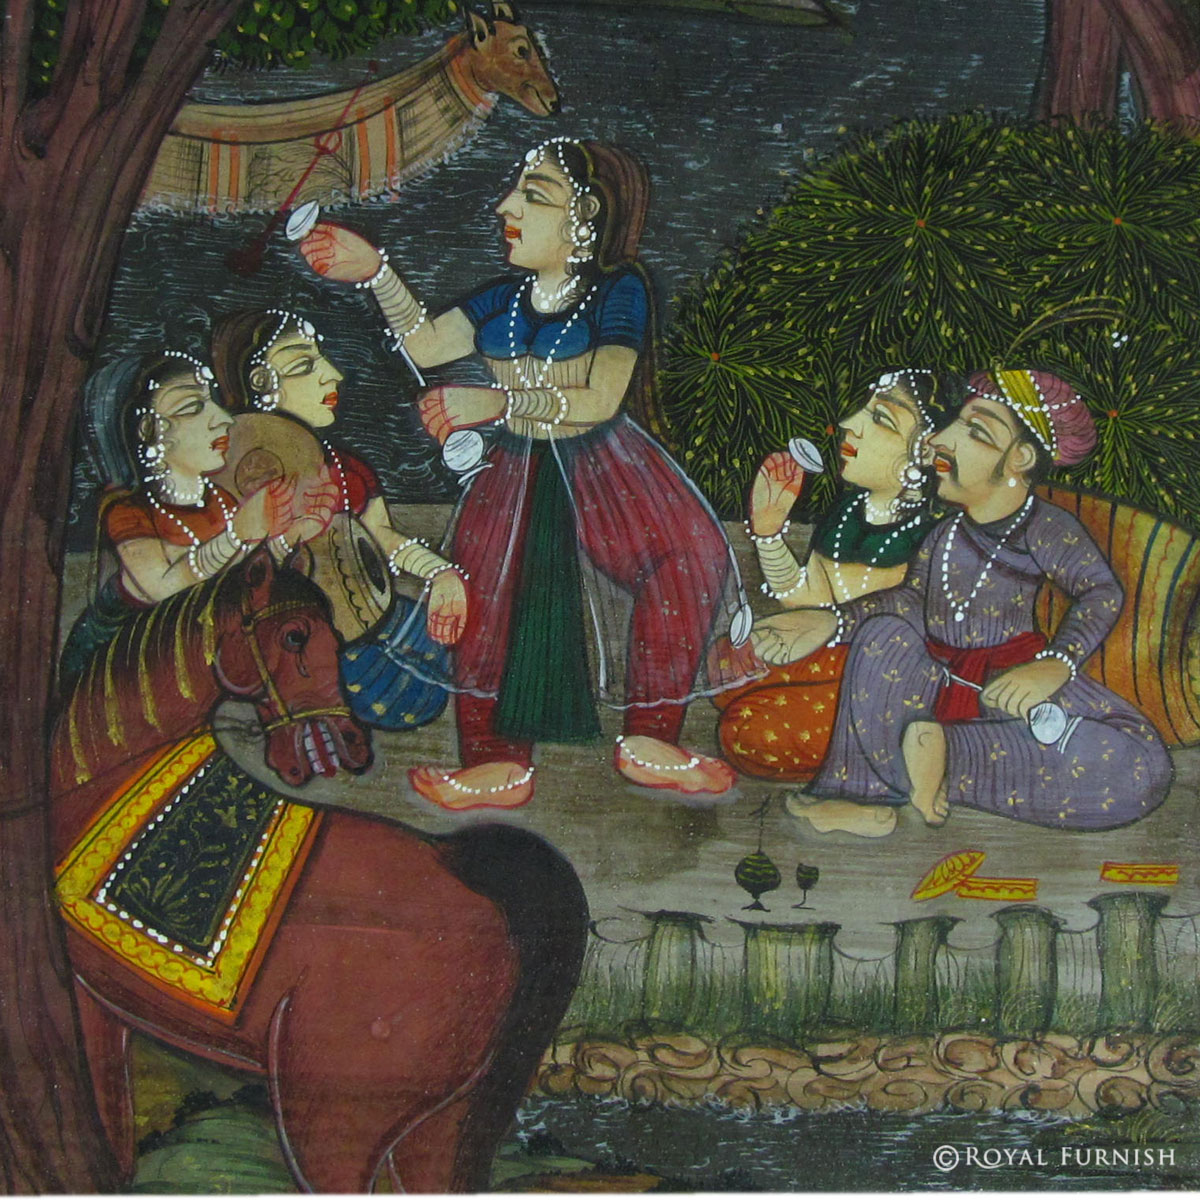 Mughal king love scene rajasthani miniature painting wall art Home decor paintings for sale india